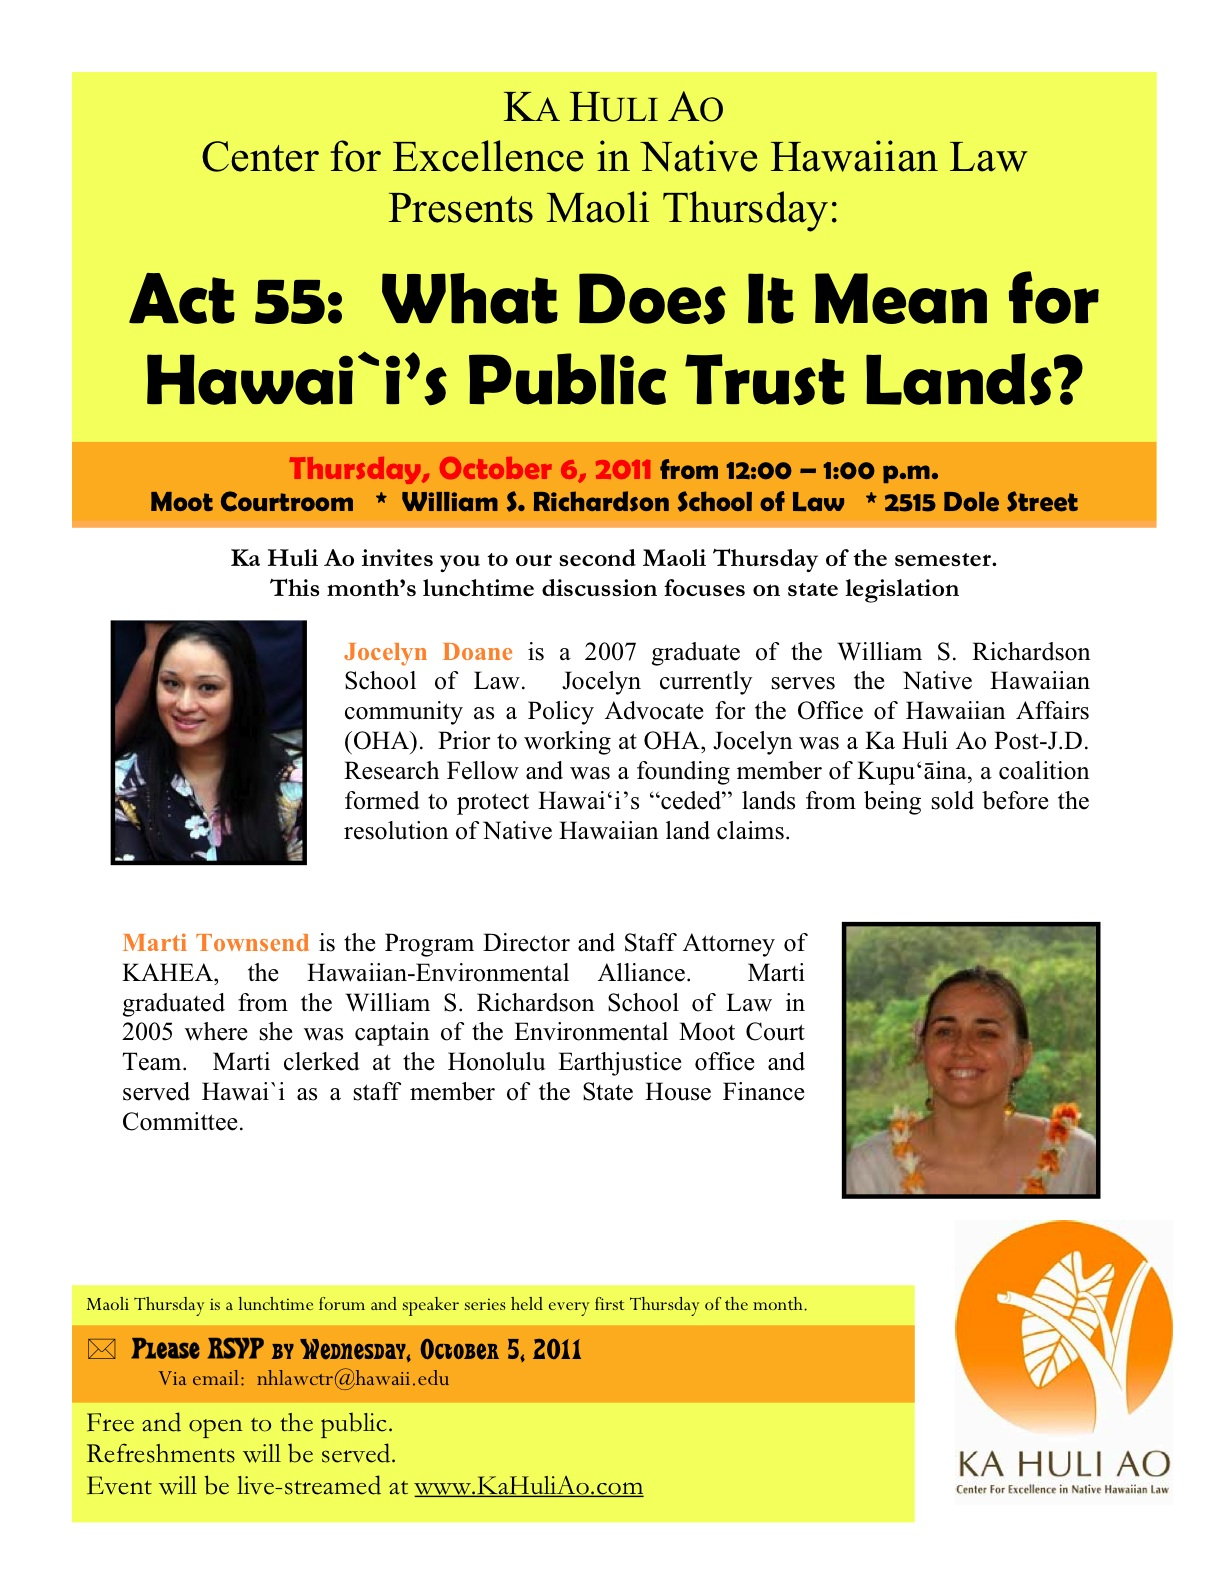 Ka Huli Ao: Center for Excellence in Native Hawaiian Law